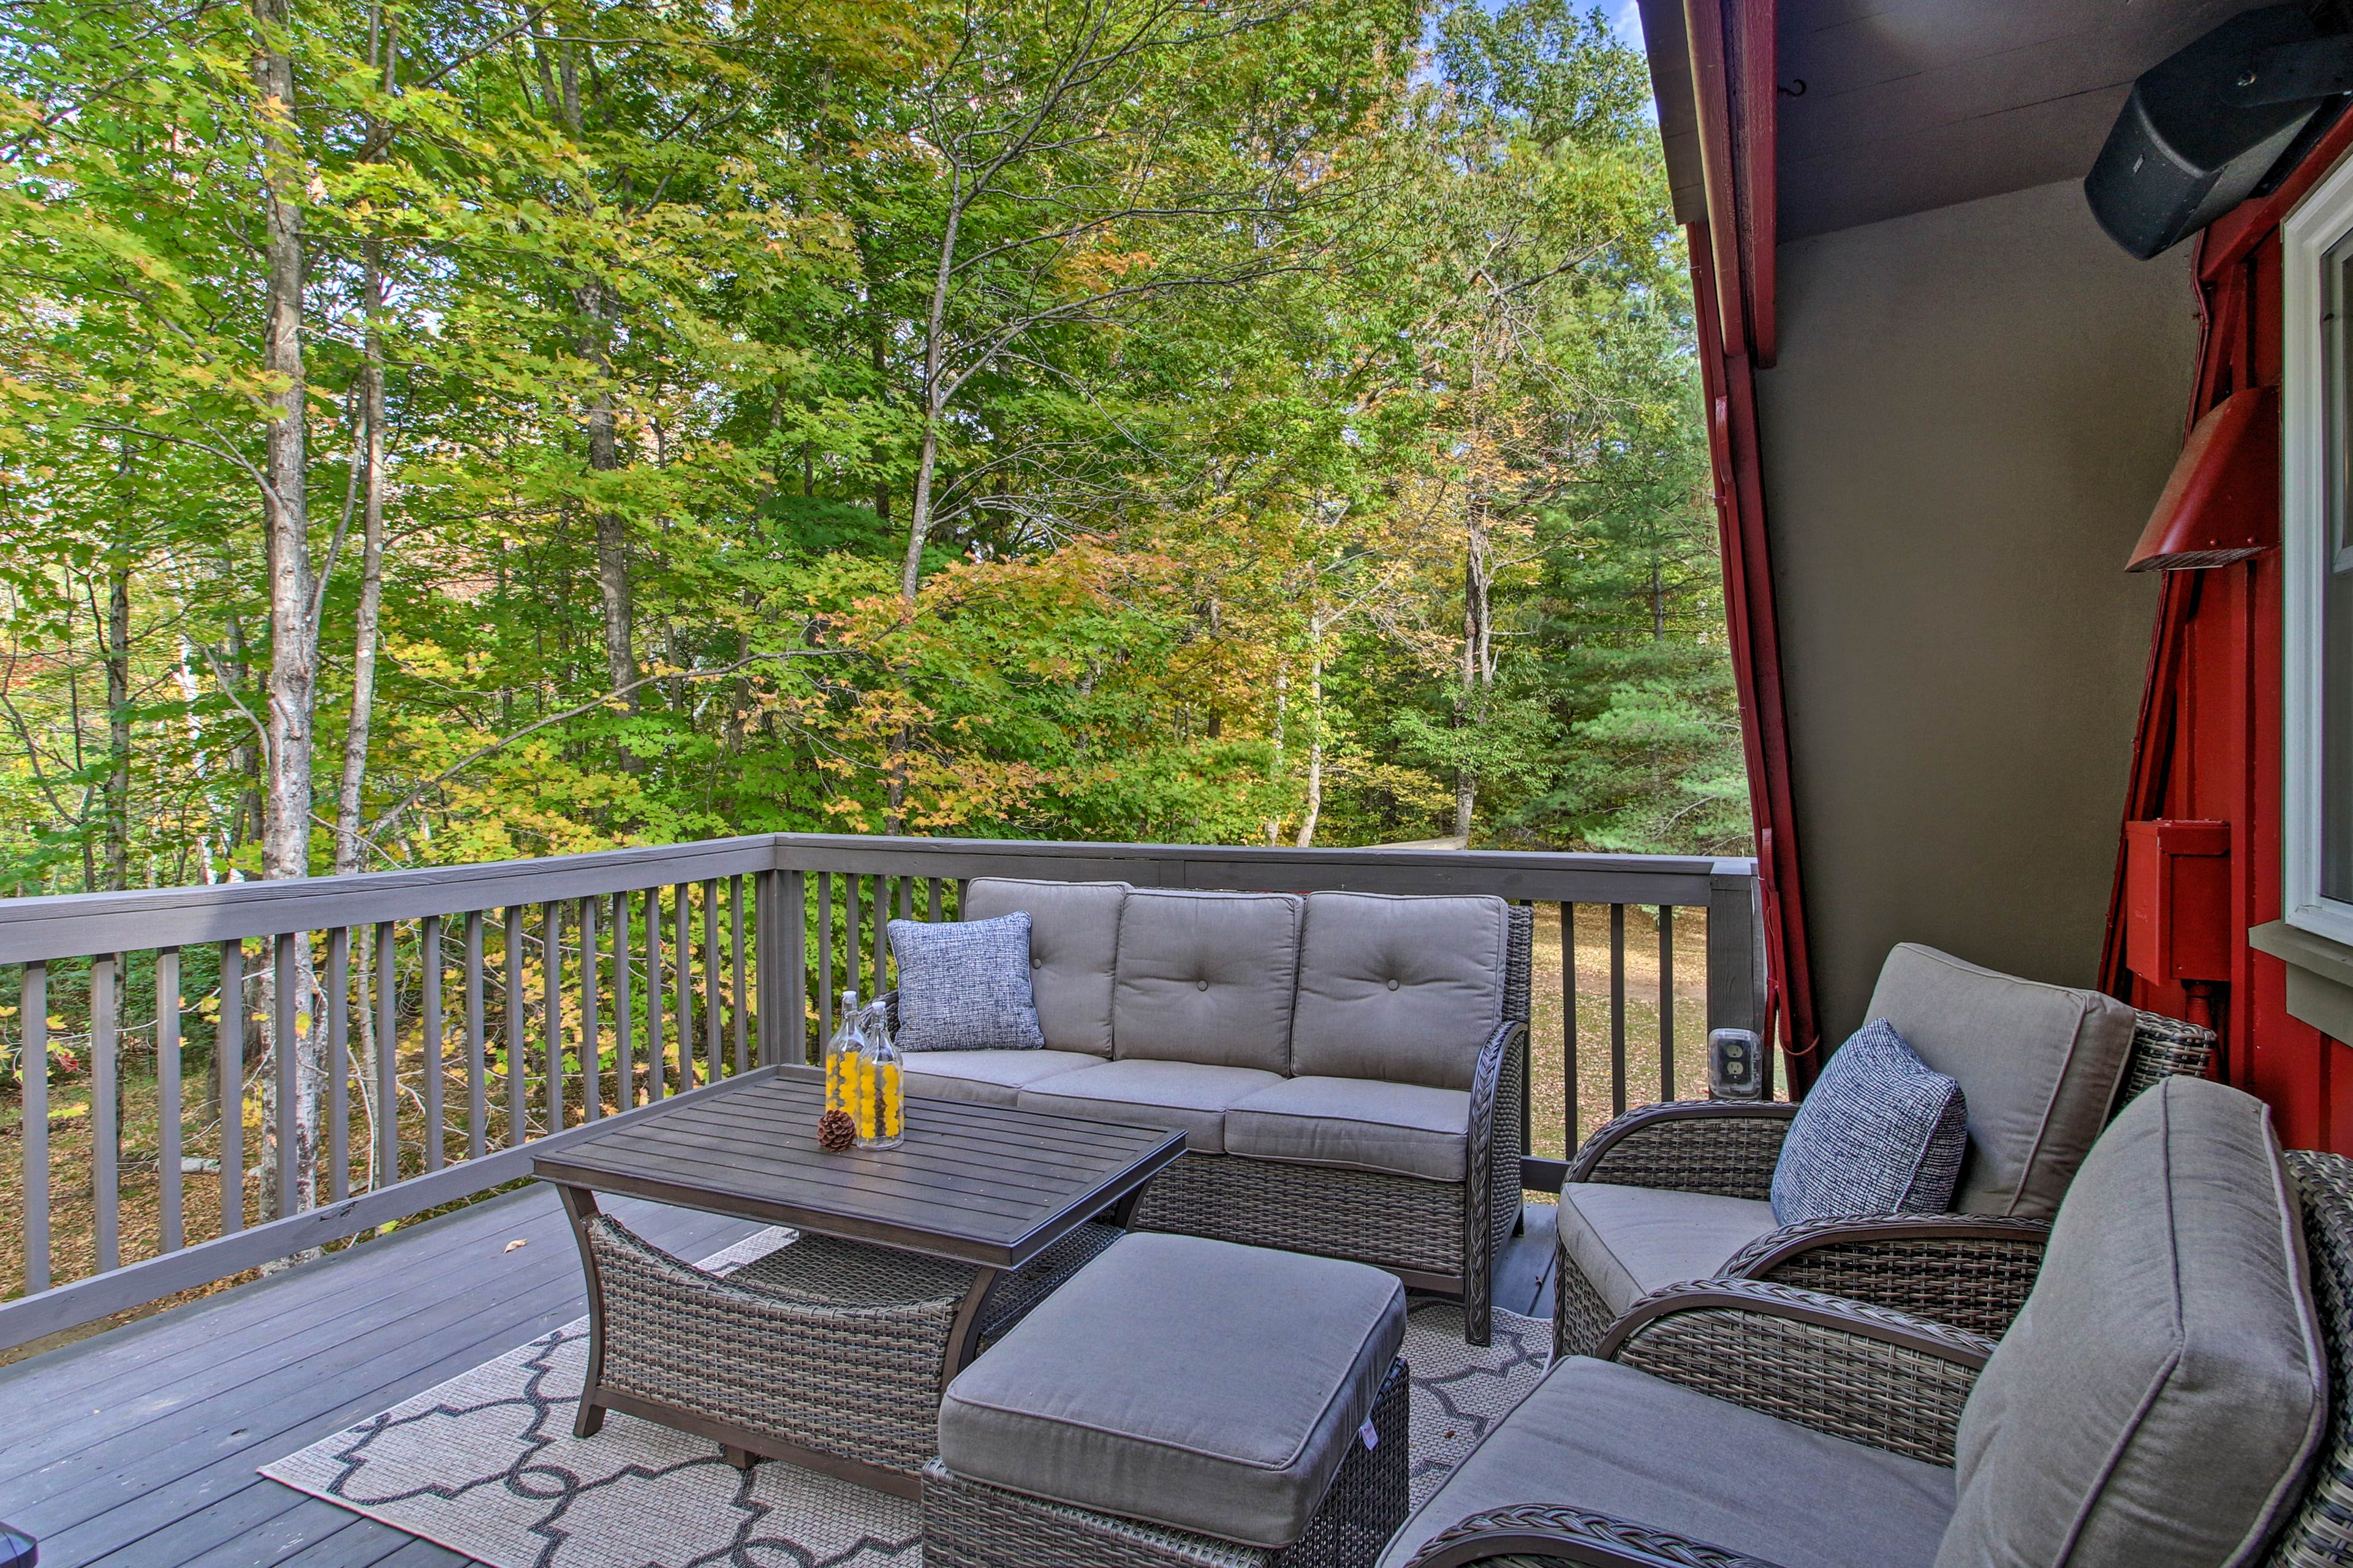 The balcony comes furnished with cushioned seating!